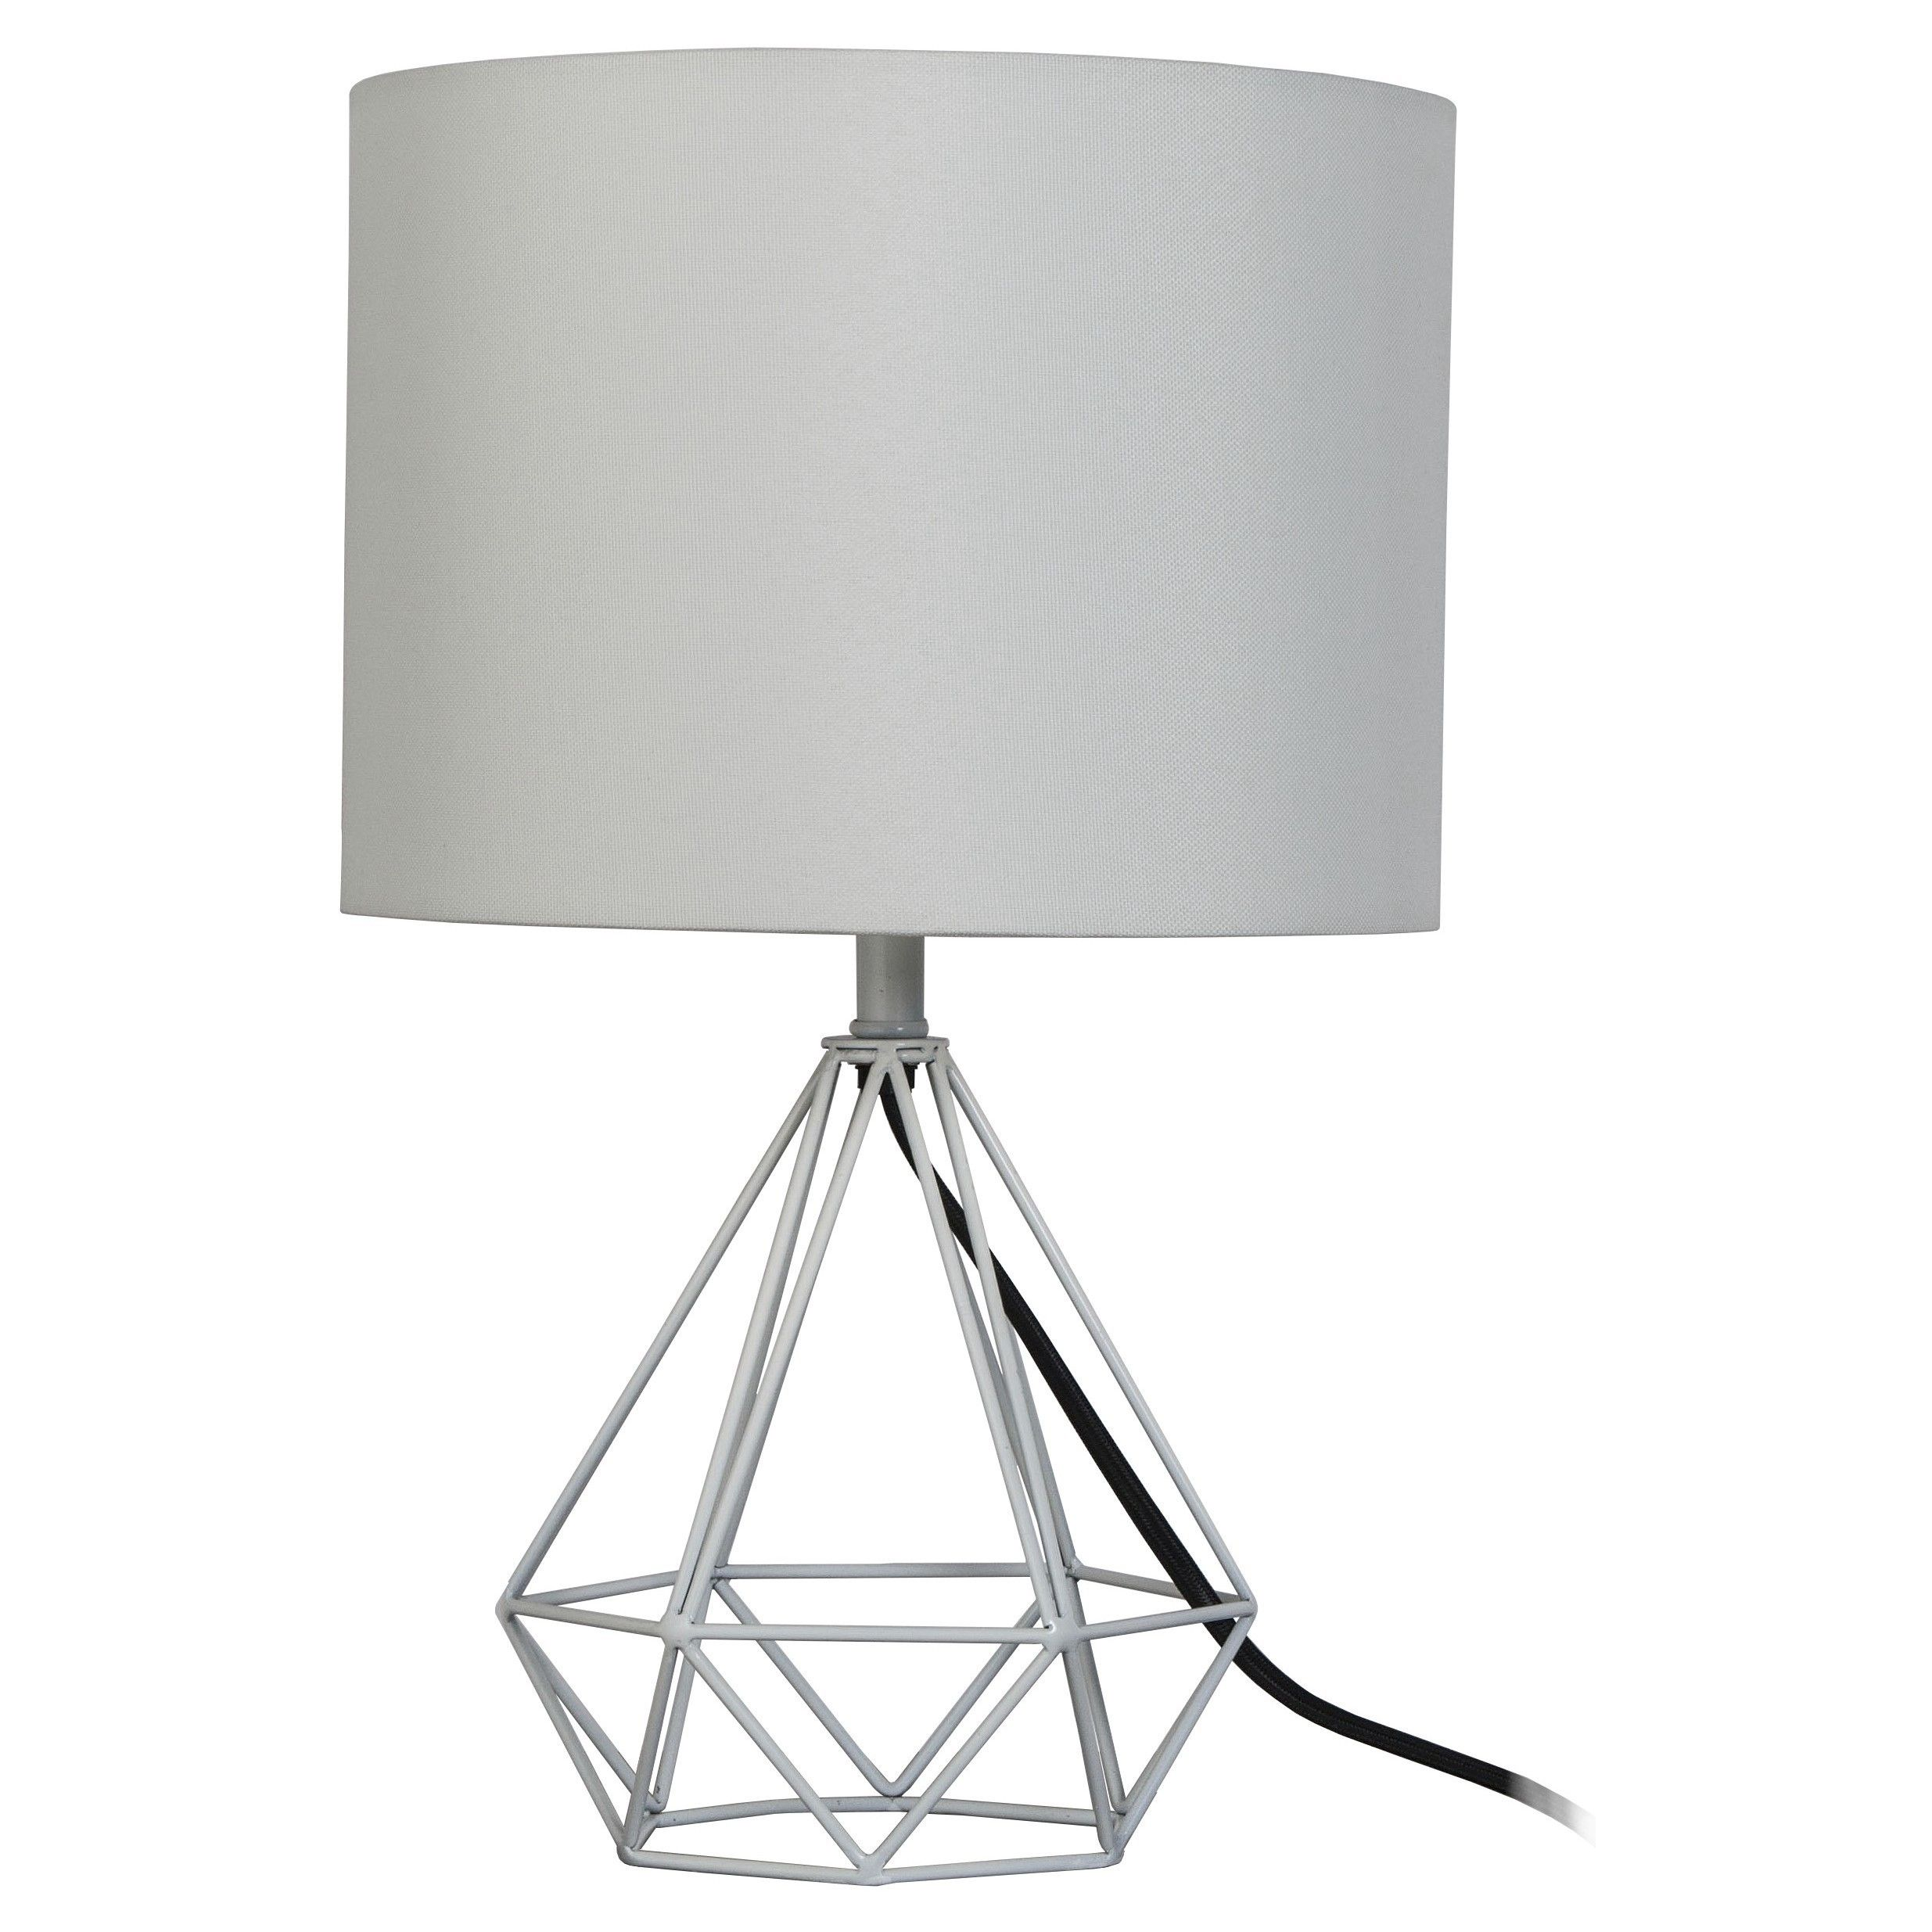 $24.99 at target The Geometric Metal Small Table Lamp from